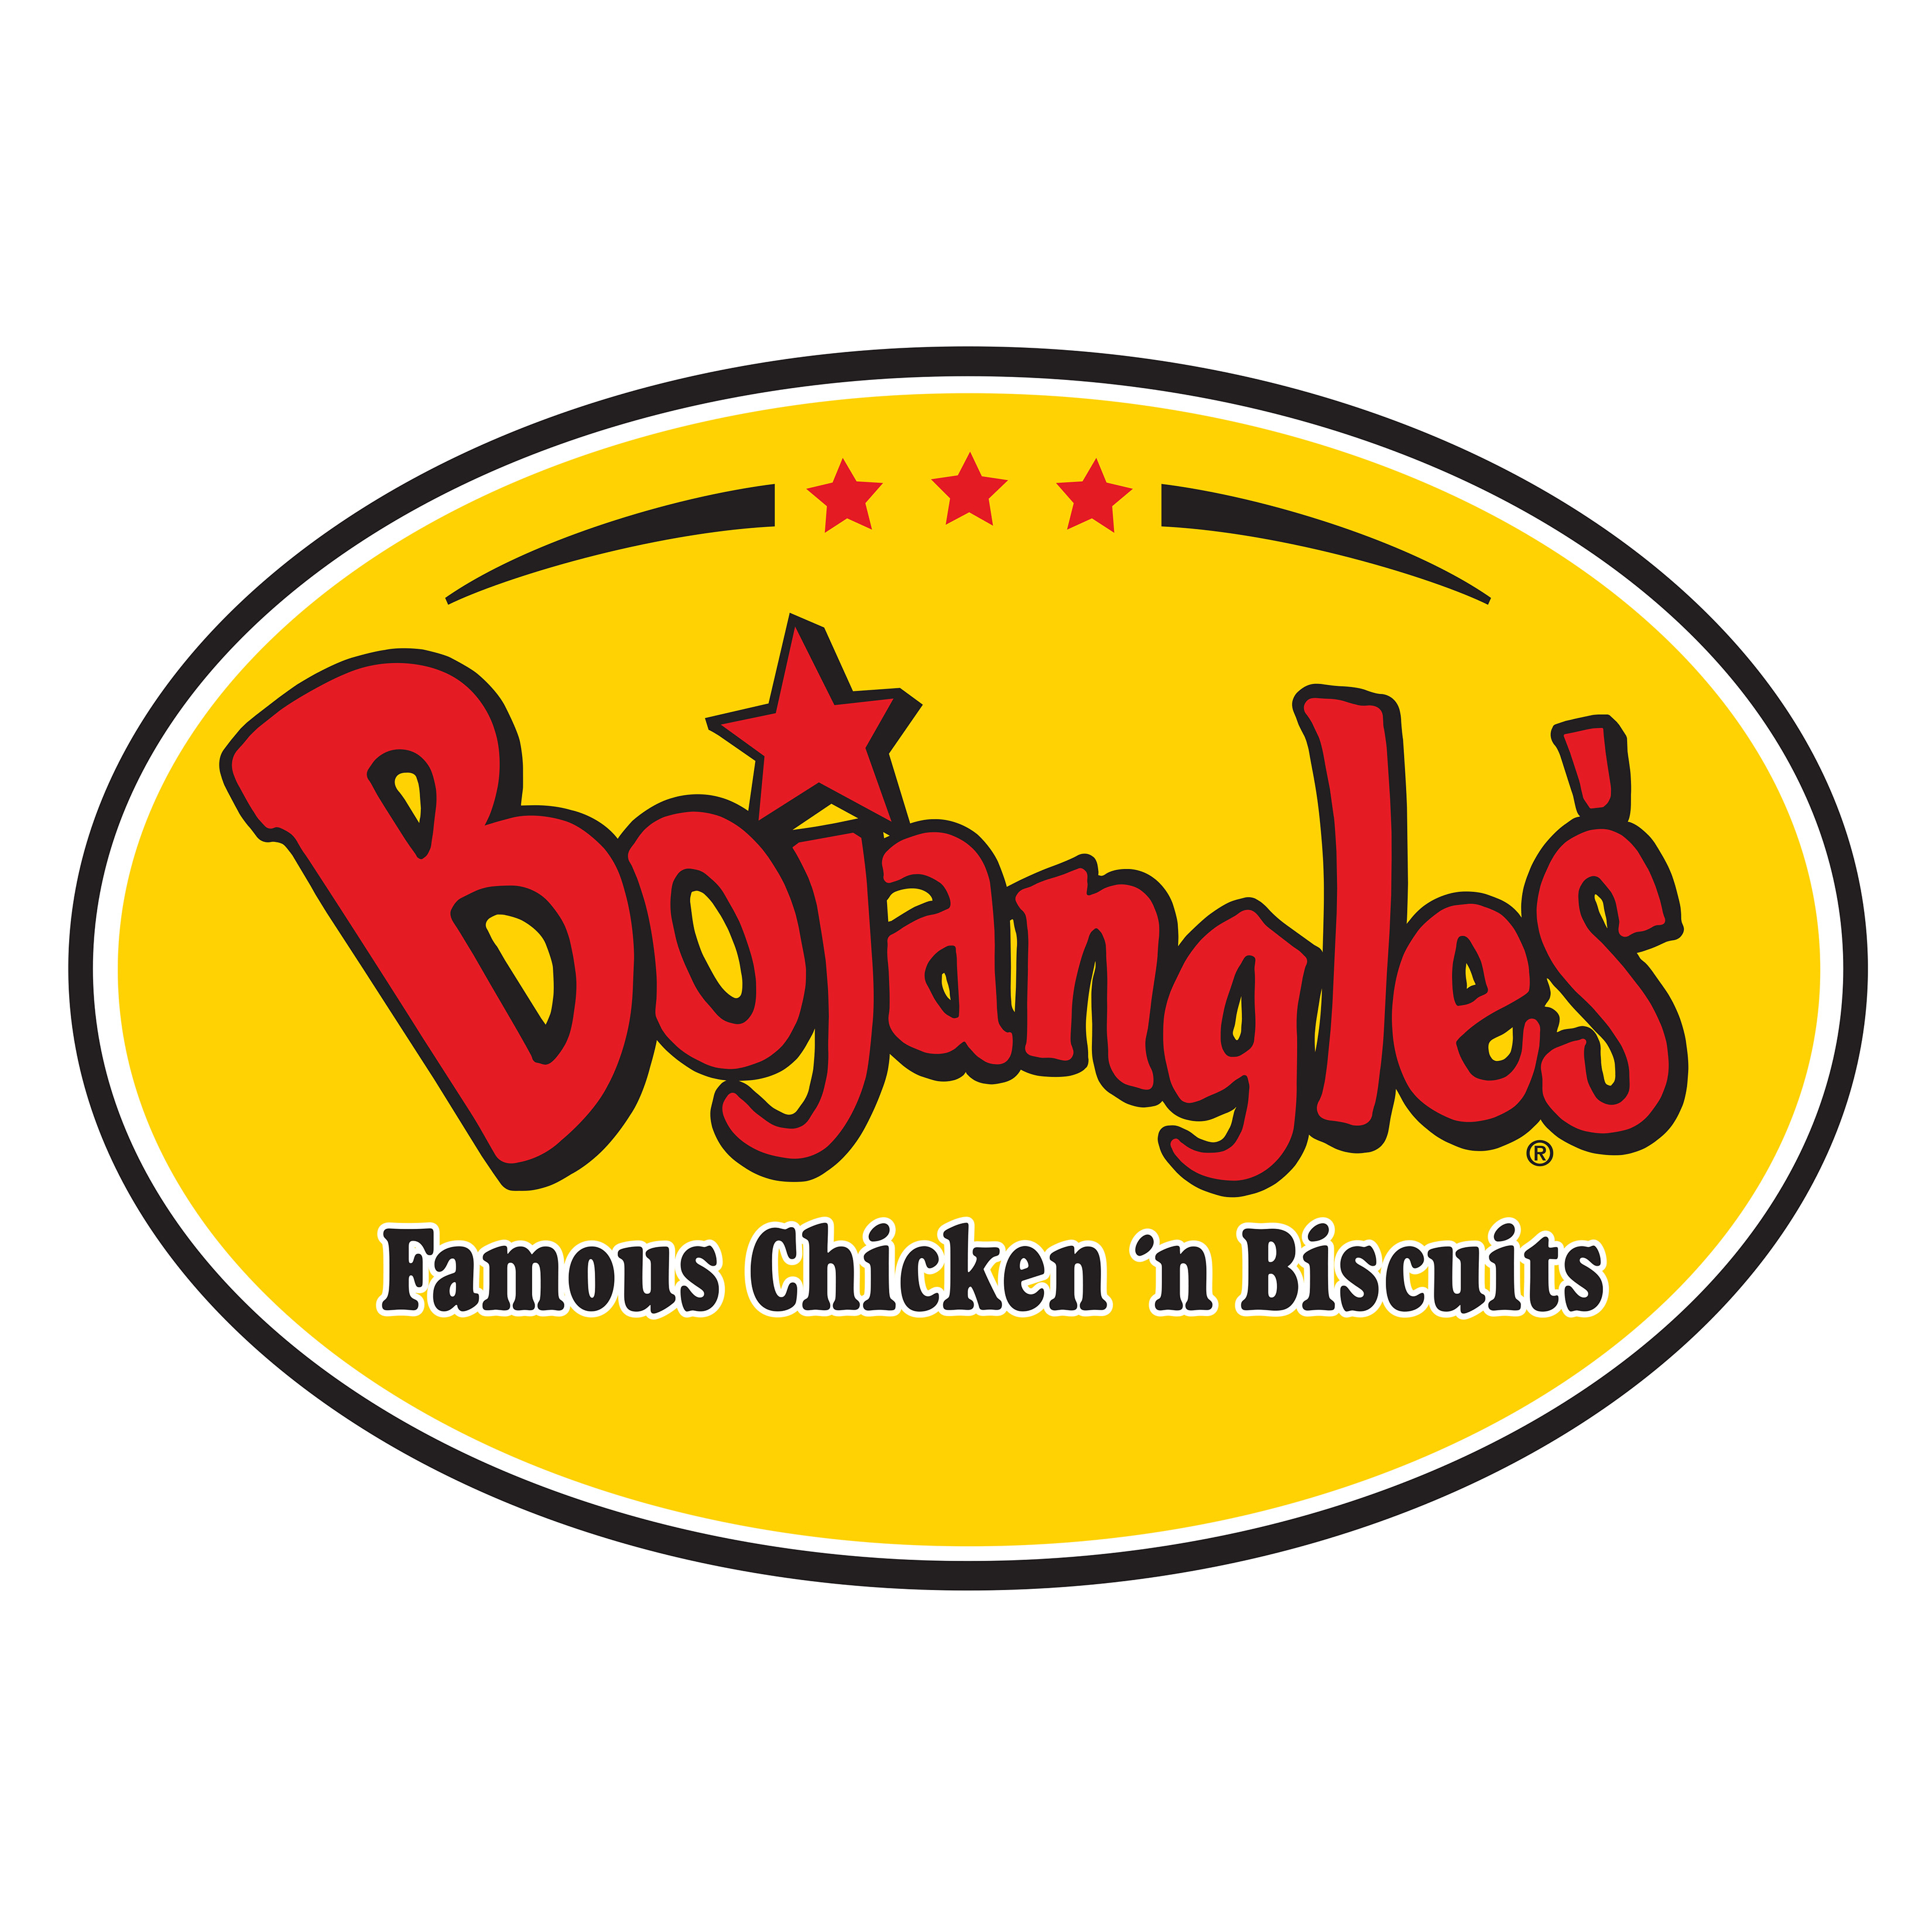 Bojangles' Famous Chicken 'n Biscuits